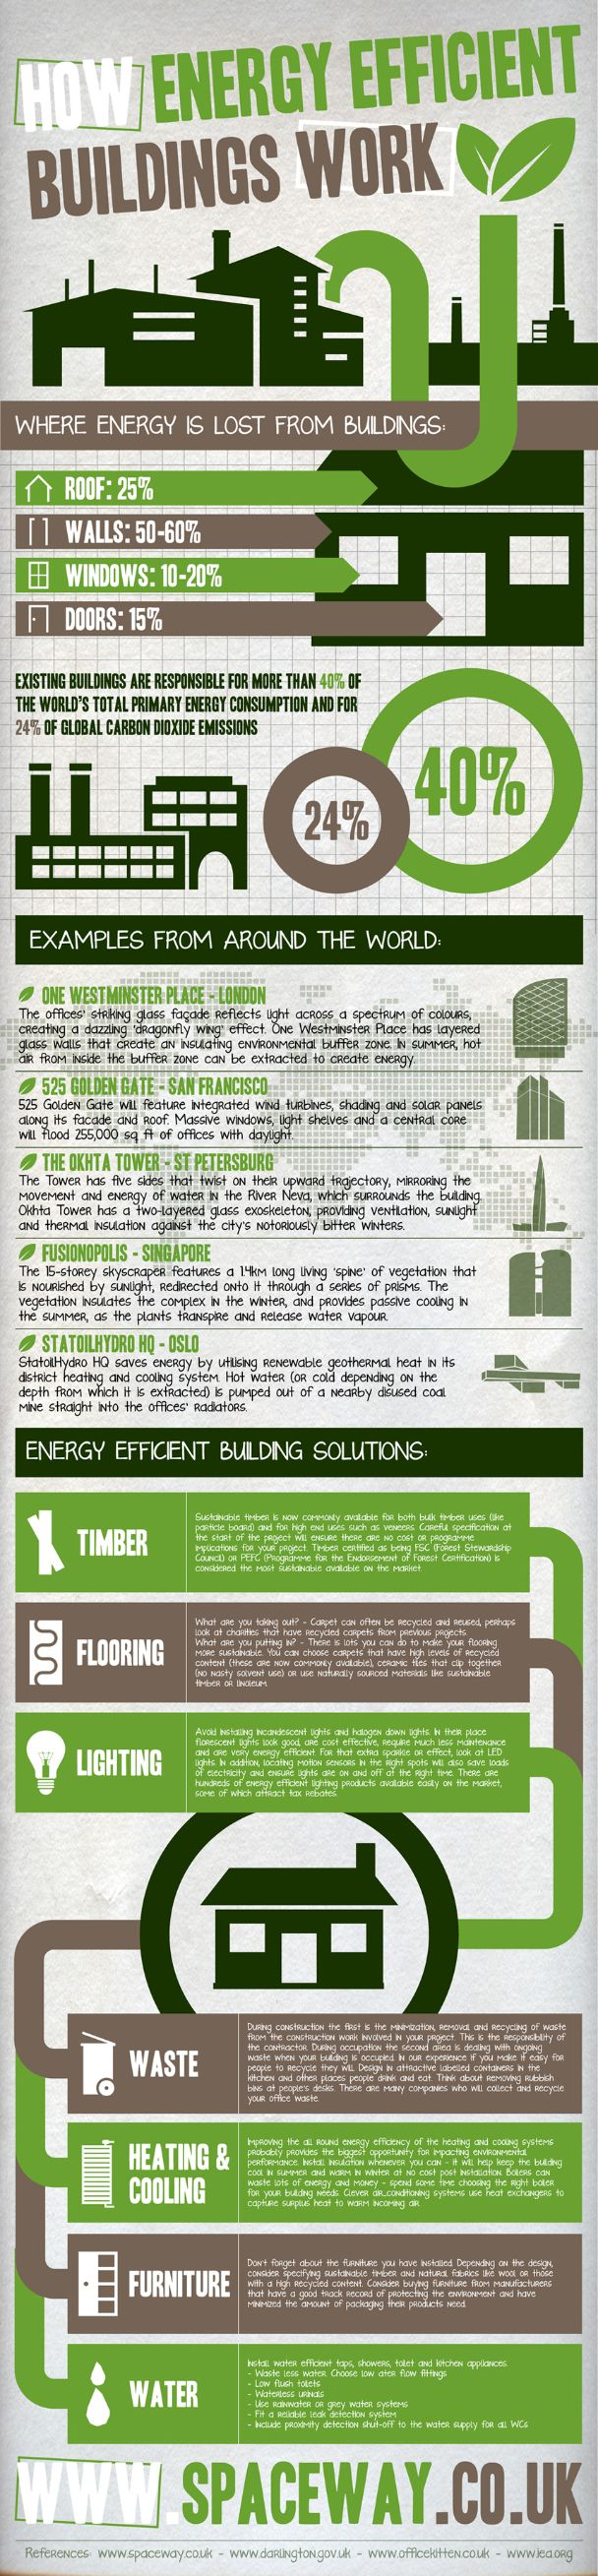 How Energy Efficient Buildings Work #infographic #eco Friendly